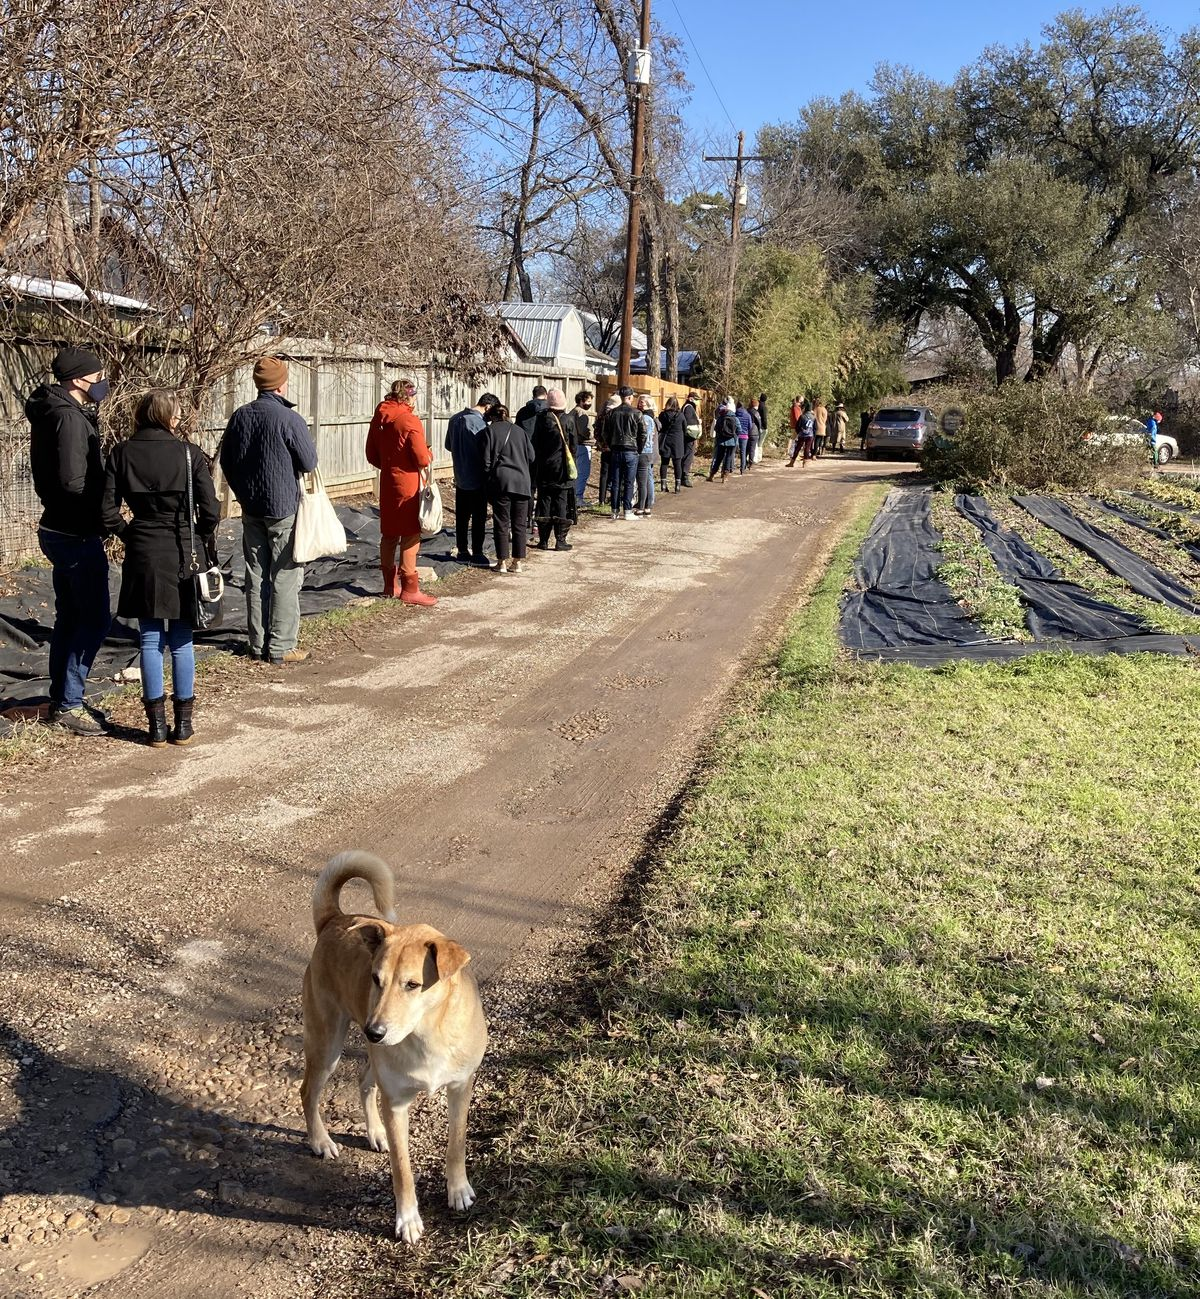 Long line of people with a dog observing